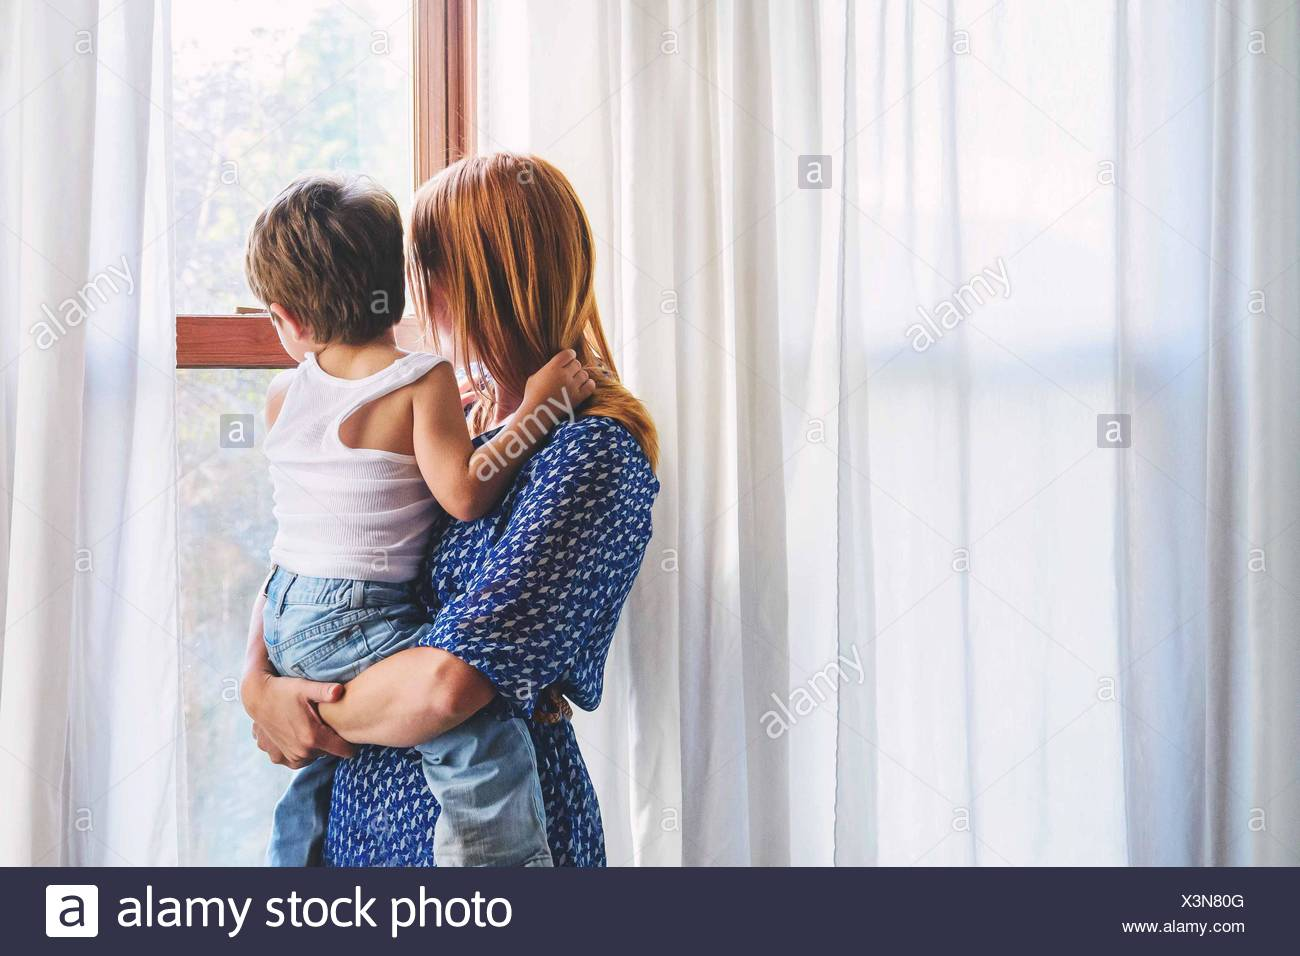 Mother and boy (2-3) child looking out of window - Stock Image